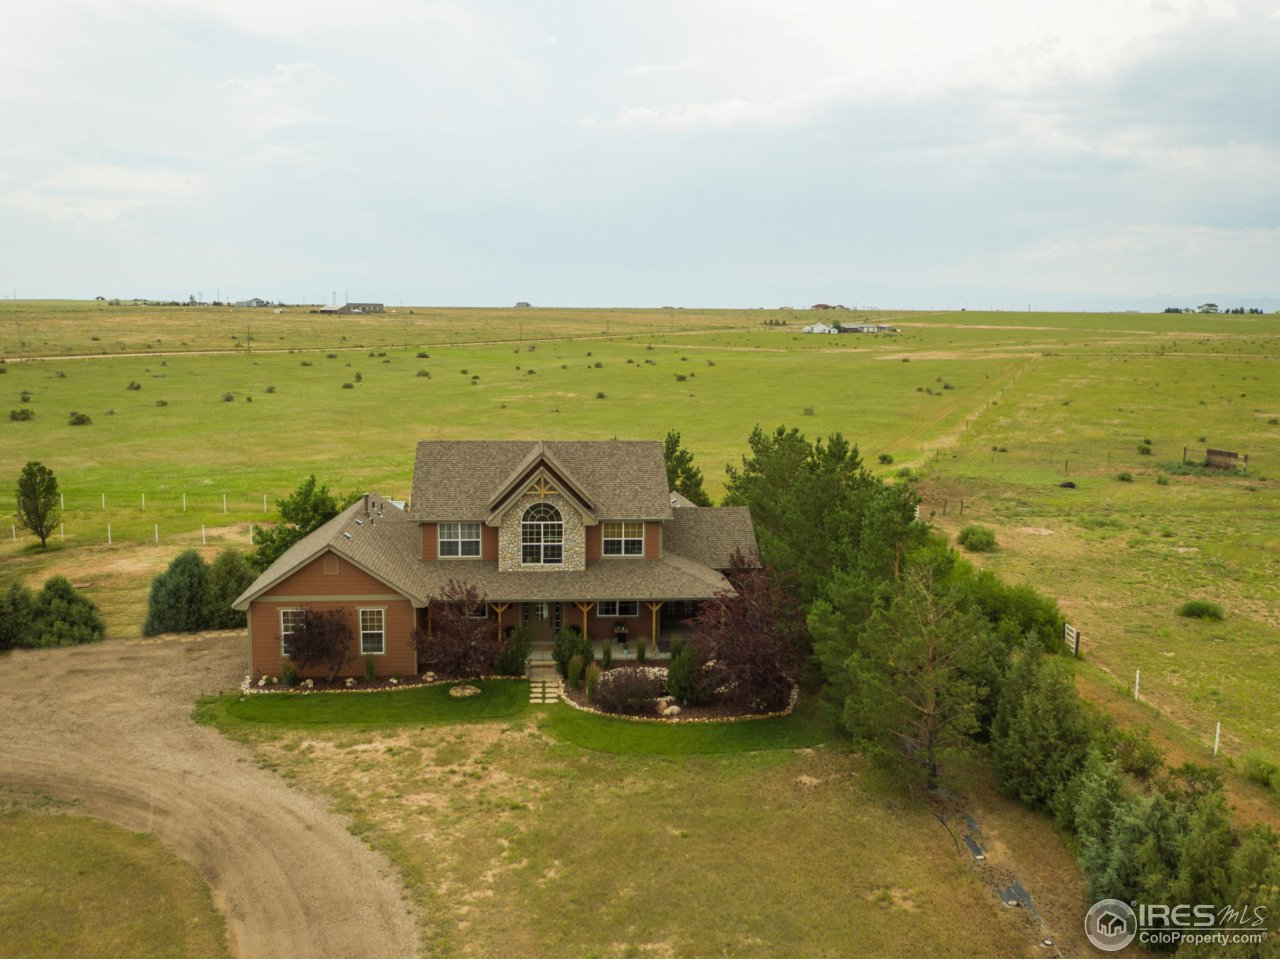 50105 County Road 17 Loveland Home Listings - Team Cook Real Estate